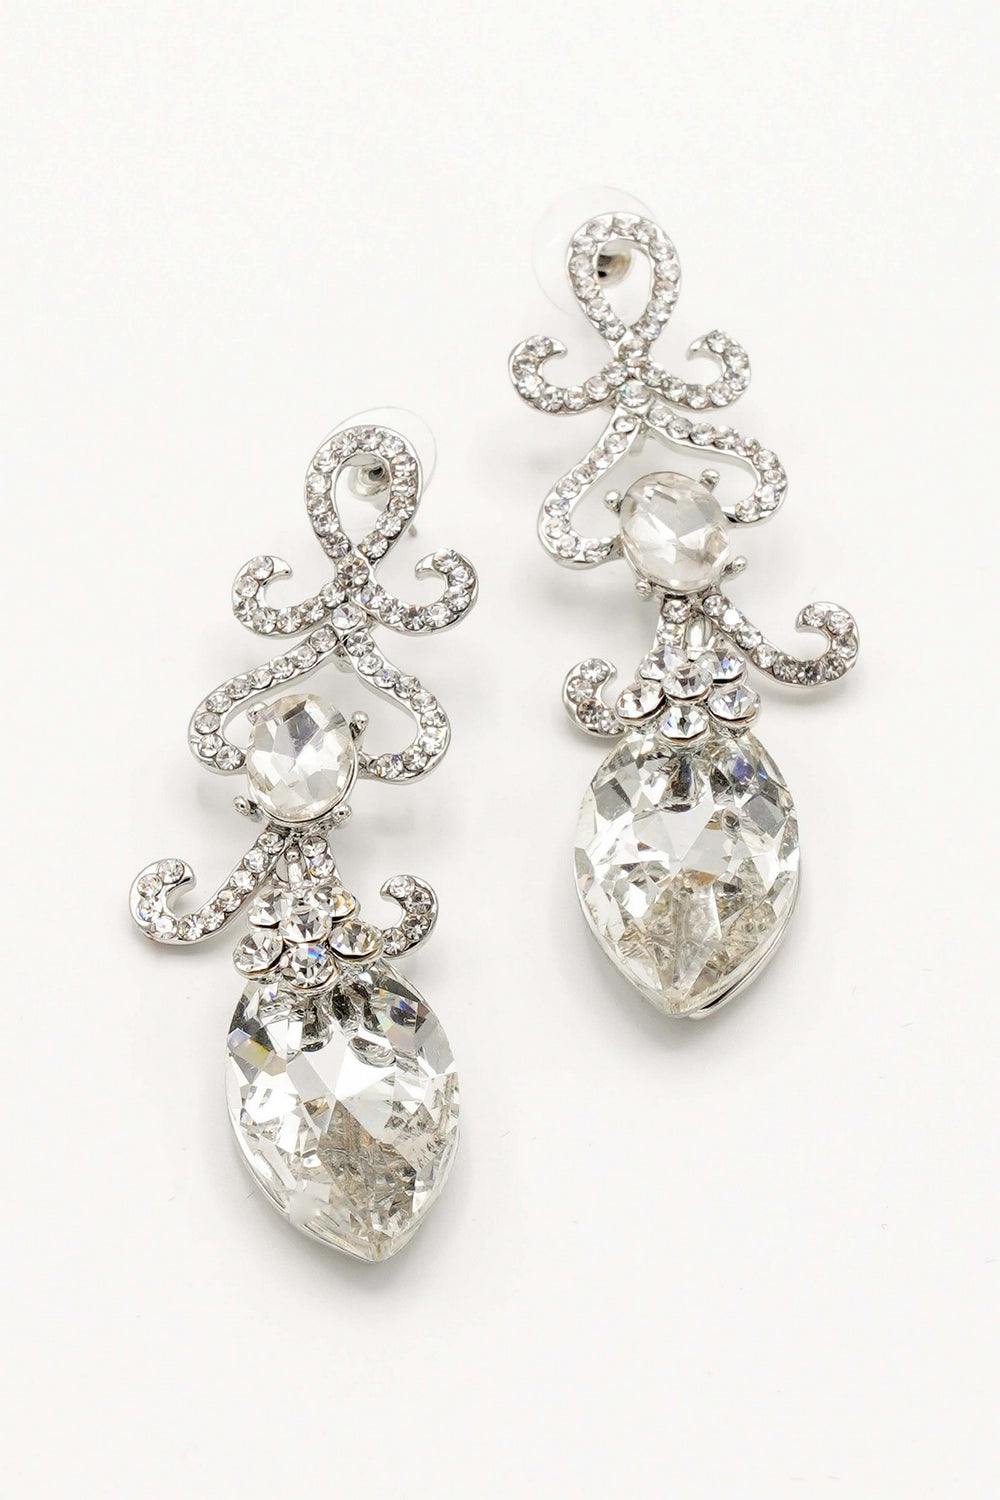 ELEGANT FLORAL DROP CLEAR DIAMANTE FASHION EARRINGS BY NARIANNA